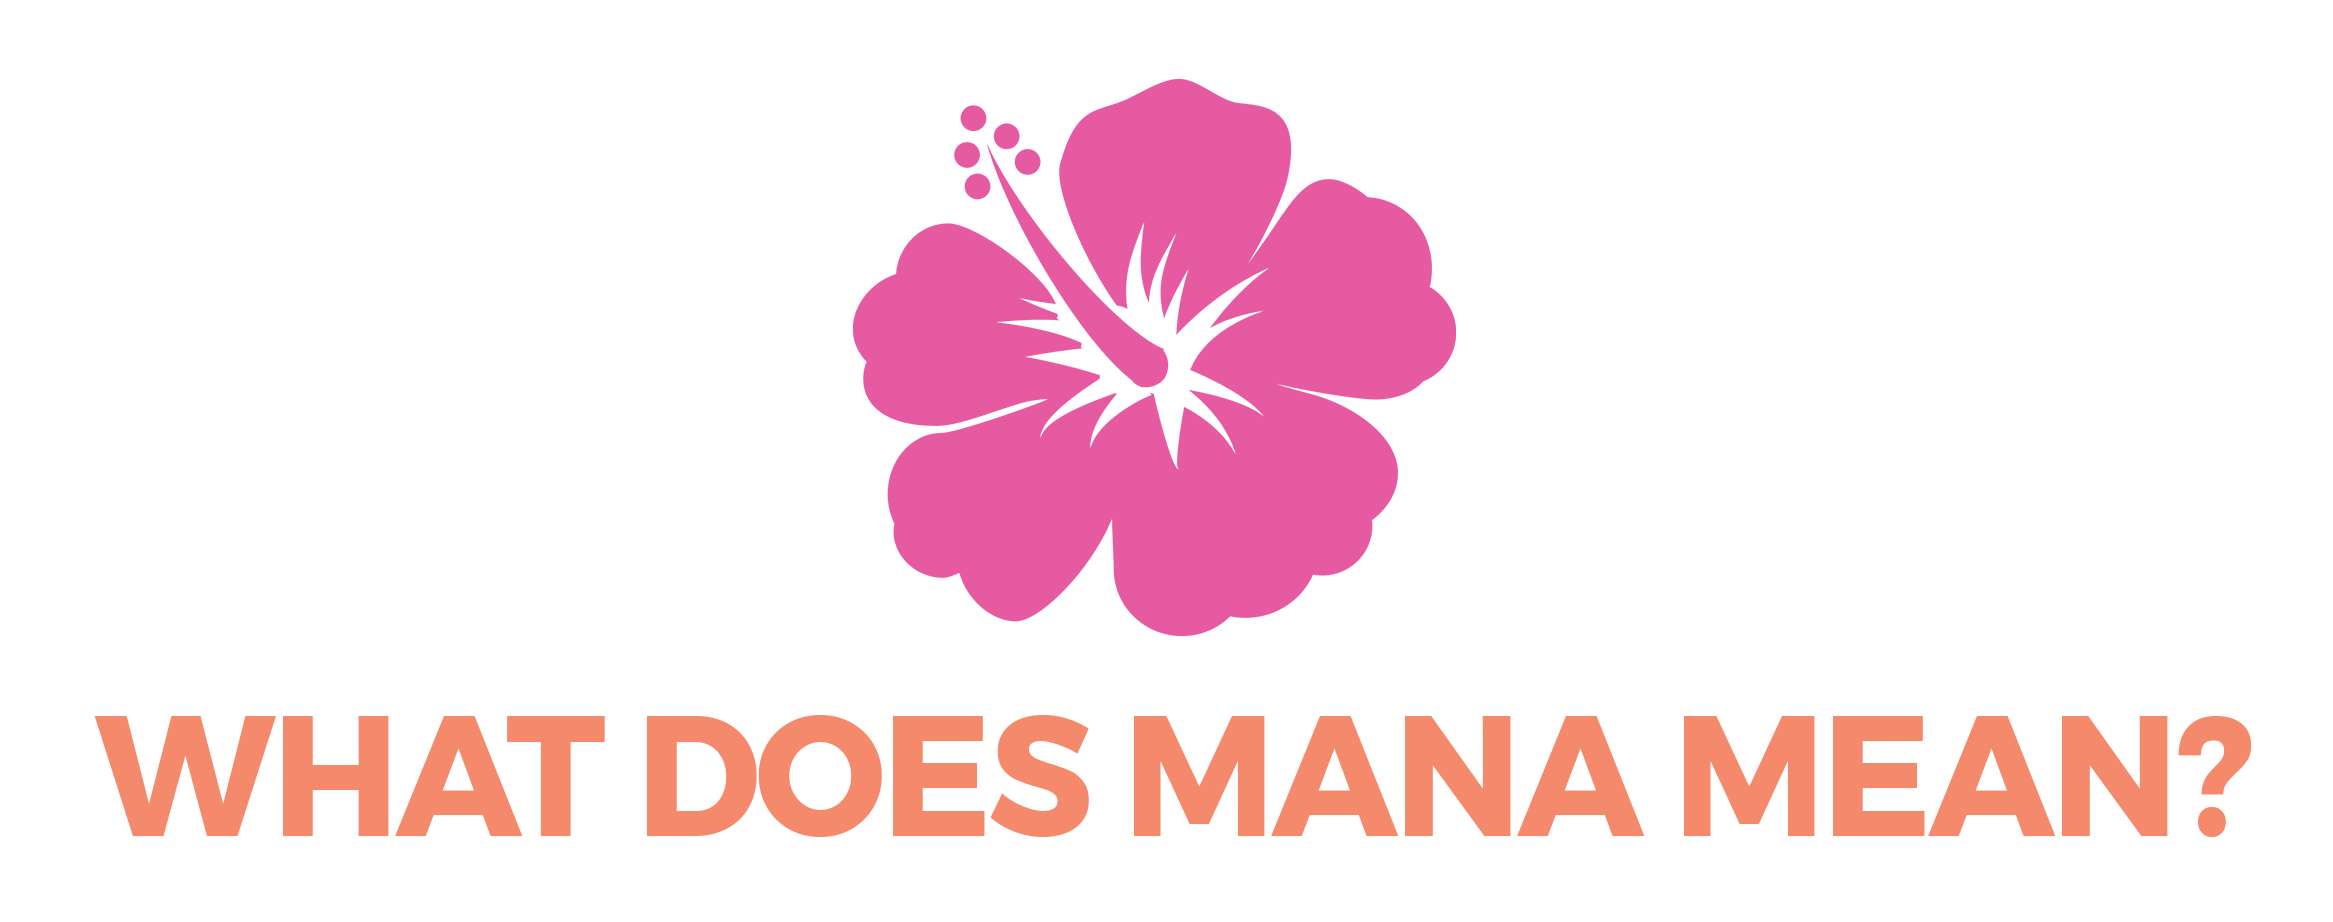 what does mana mean.png